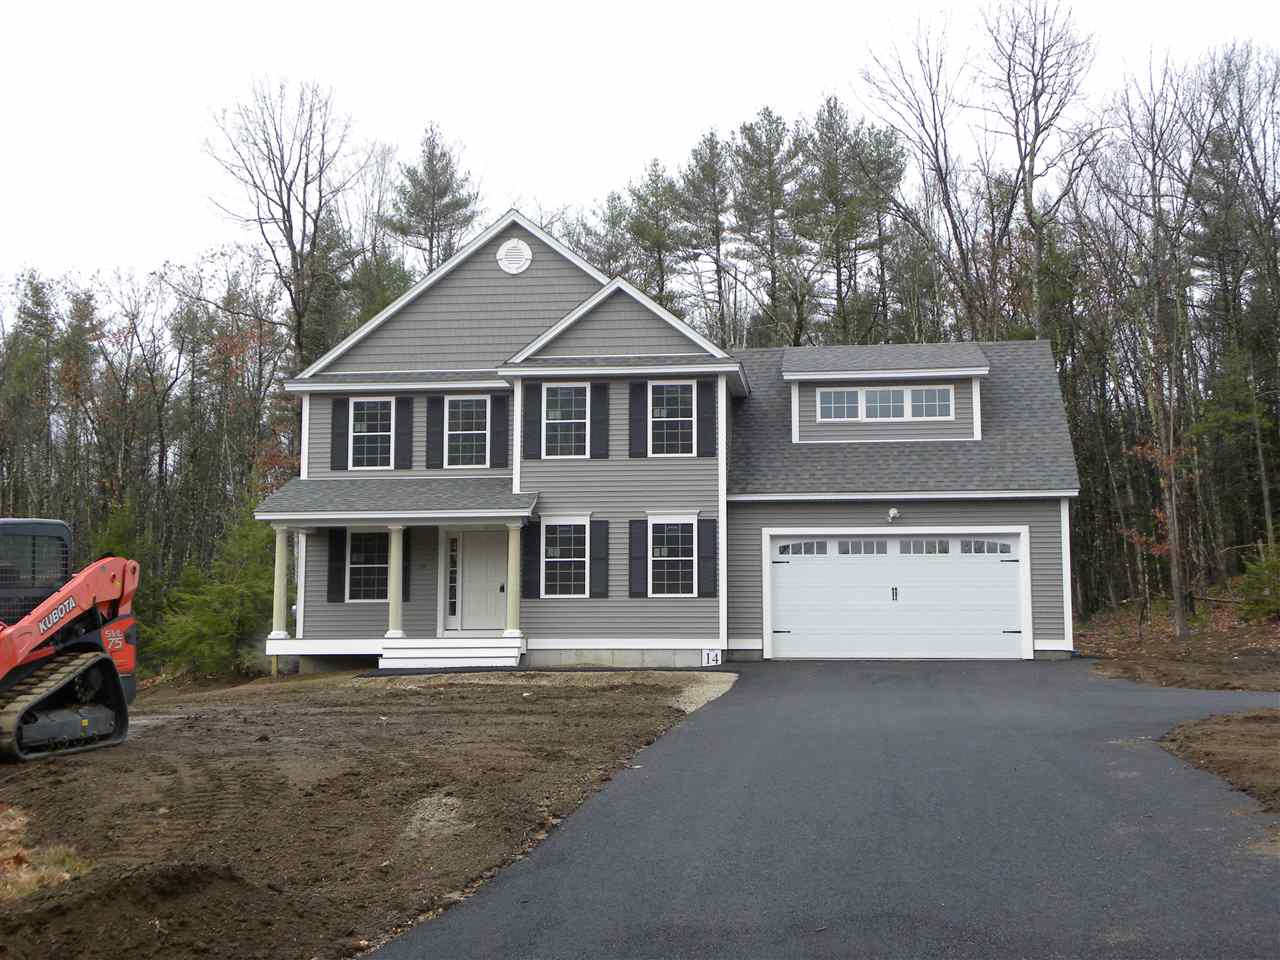 Photo of 74 Juniper Circle Auburn NH 03032